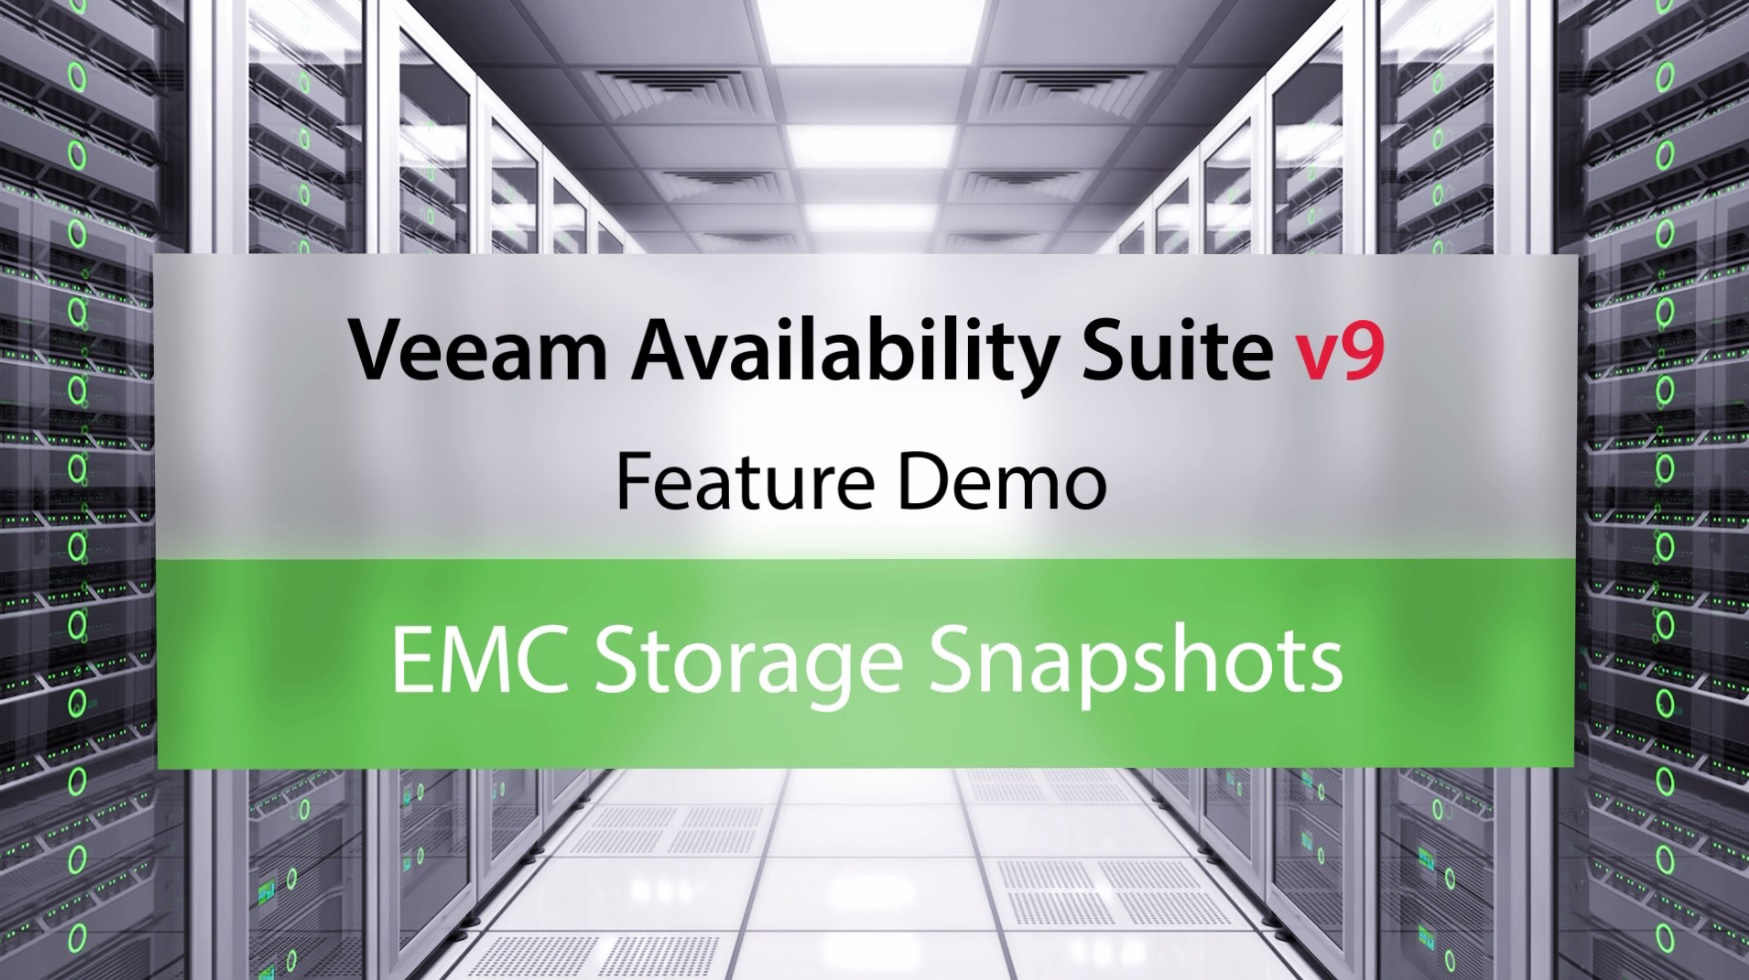 Veeam Availability Suite v9: EMC Storage Snapshots